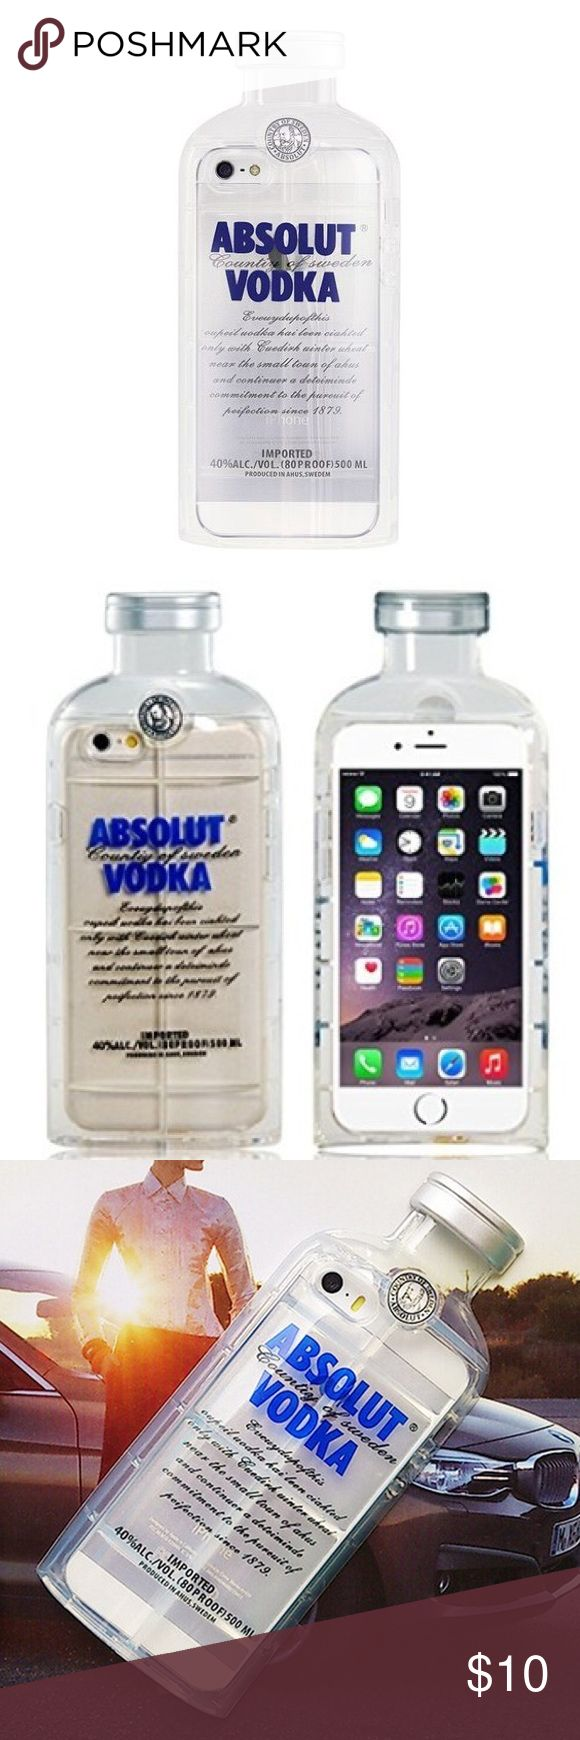 Absolut vodka iPhone 6S cellphone Case / Cover NIB Absolut vodka iPhone 6S cellphone Case , brand new in box. Price firm. iphone 6S Accessories Phone Cases